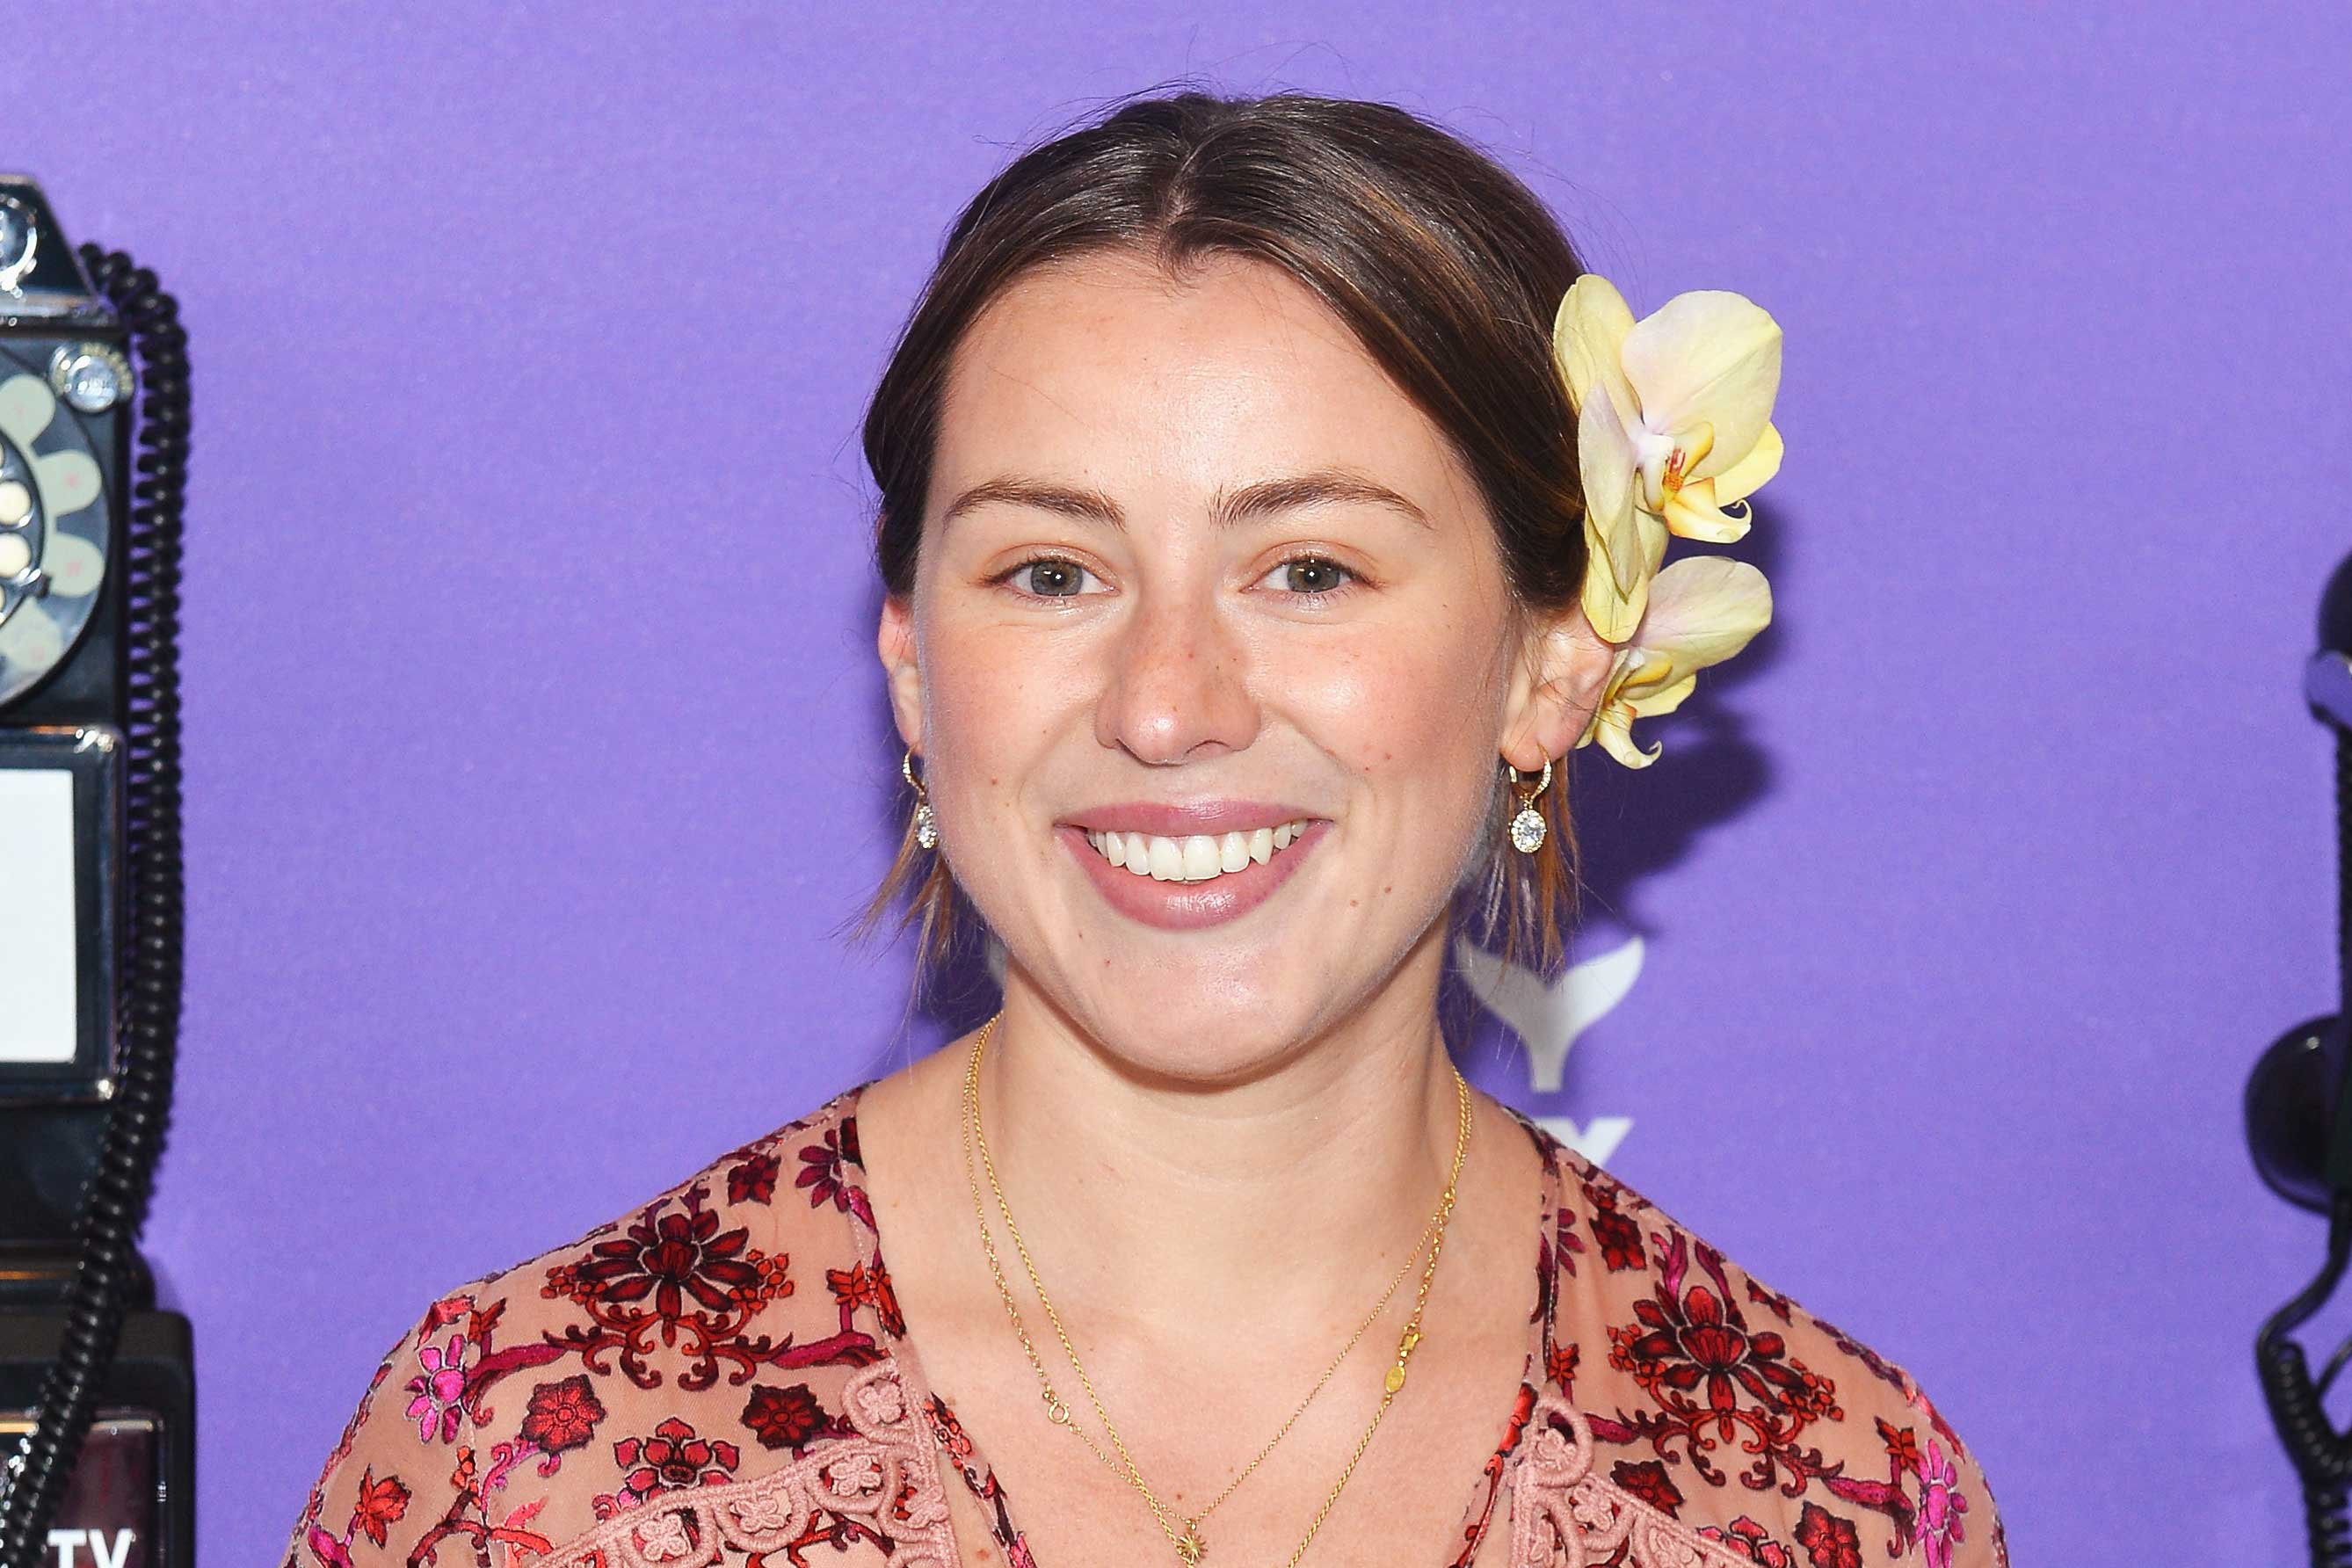 A smiling woman with flowers in her hair stands in front of a purple wall.